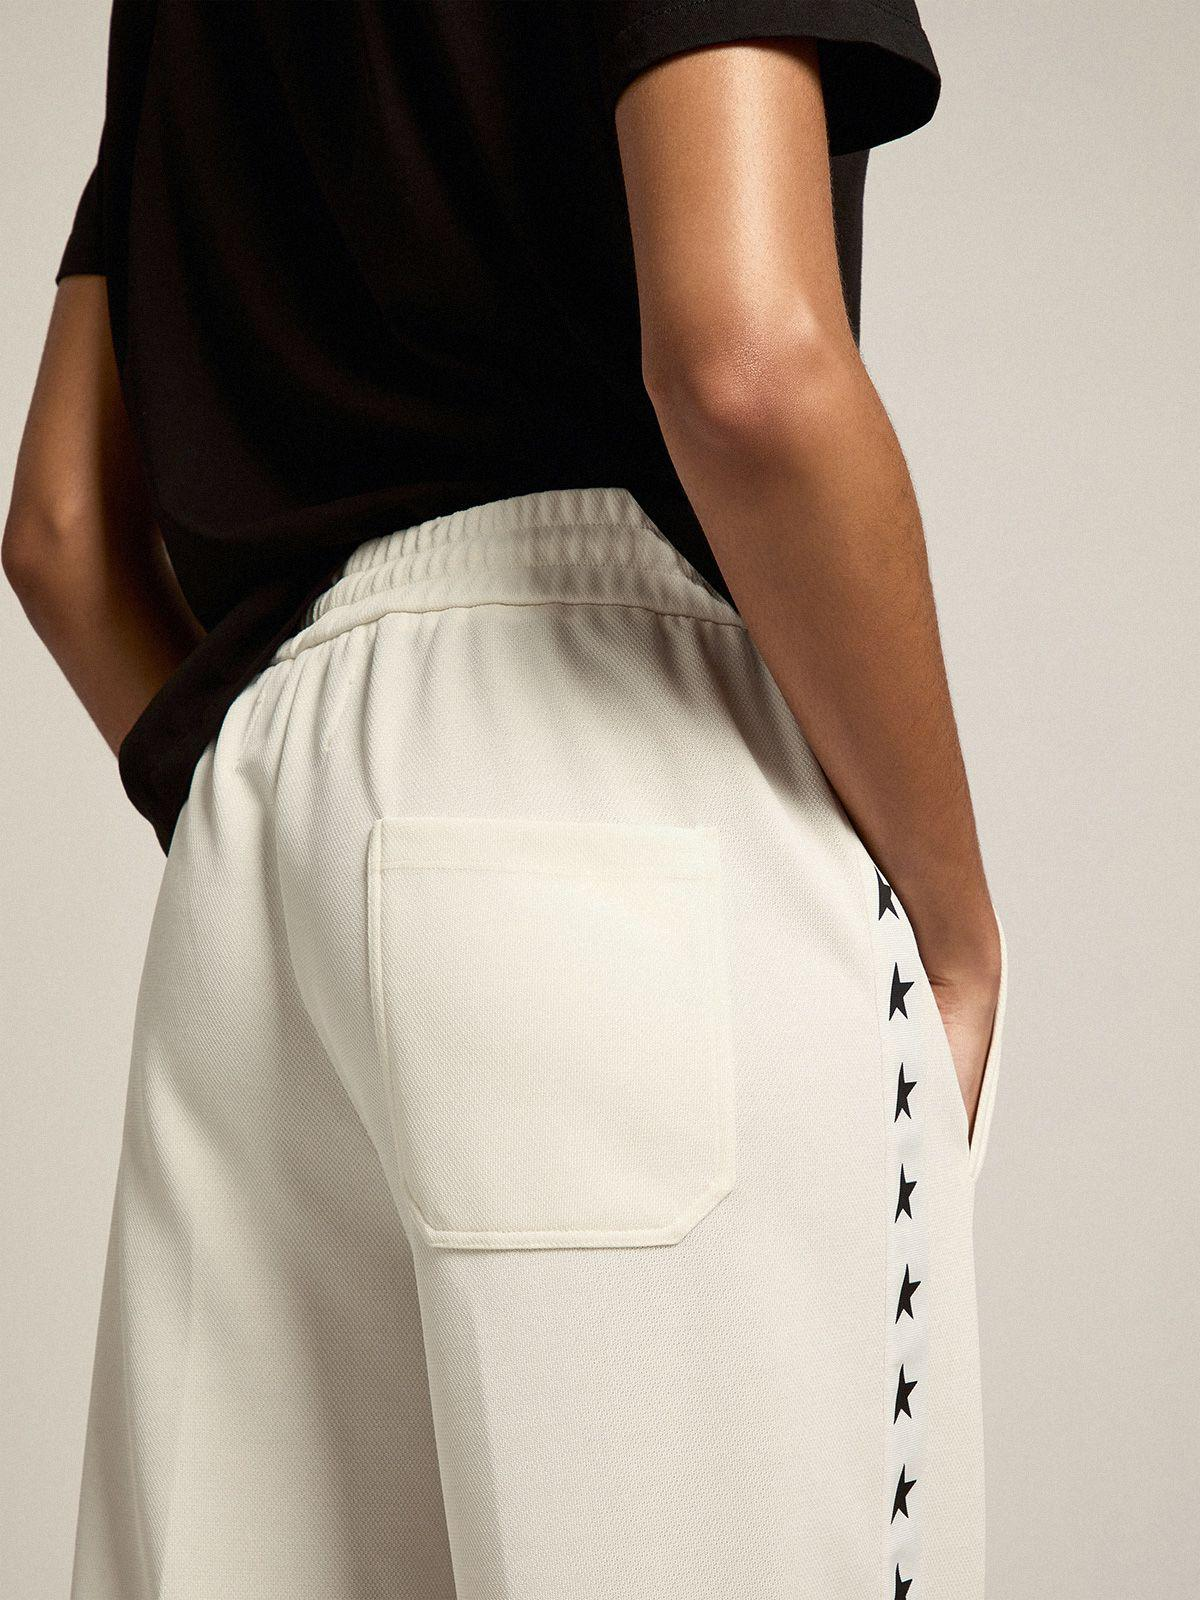 Papyrus white Dorotea Star Collection jogging pants with black stars on the sides 3